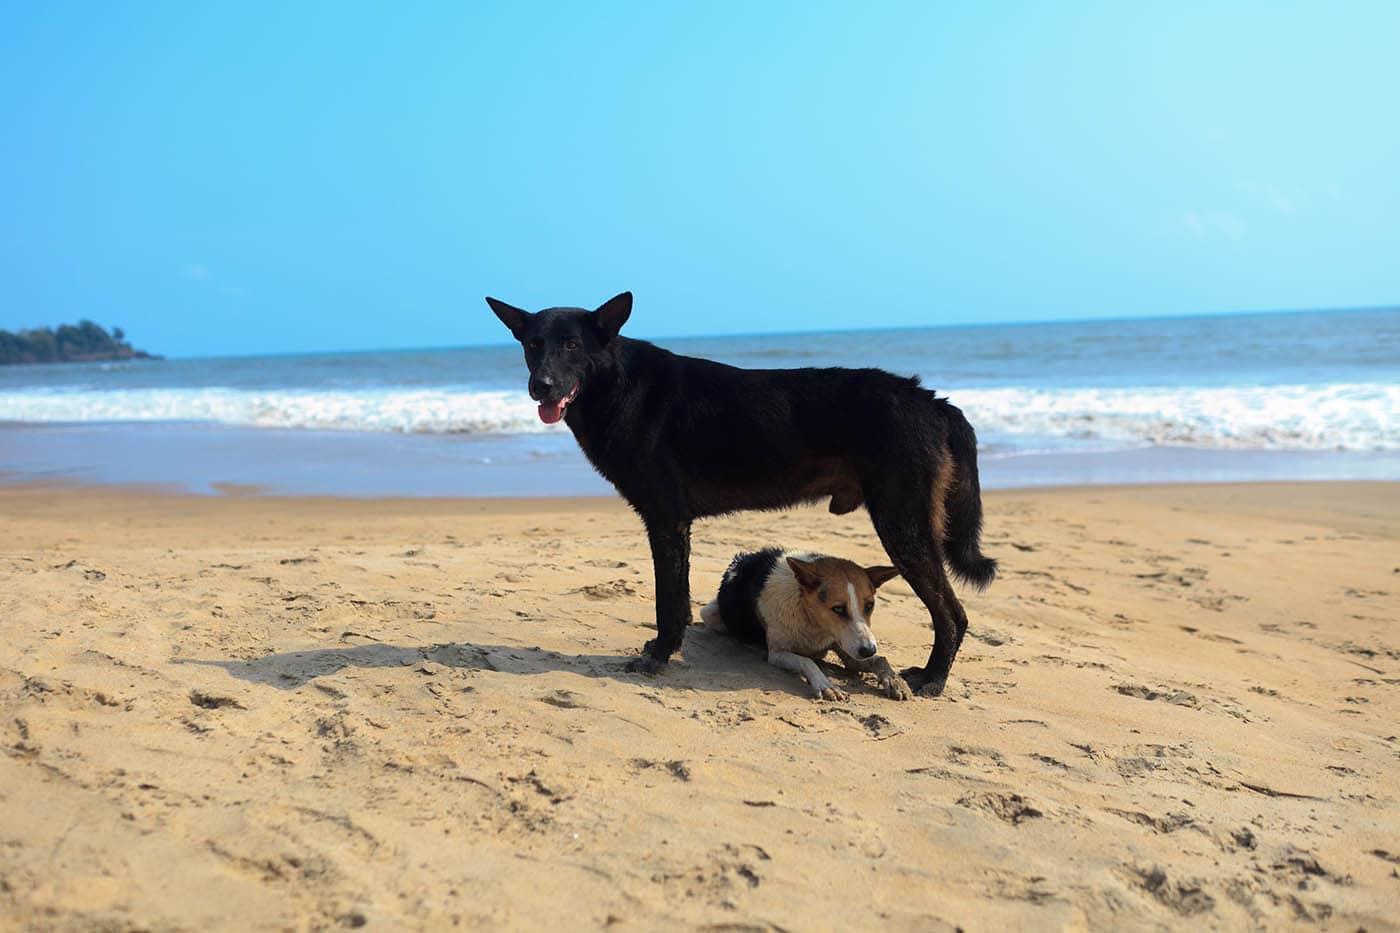 Dogs on the beach in Palolem, Goa, India.